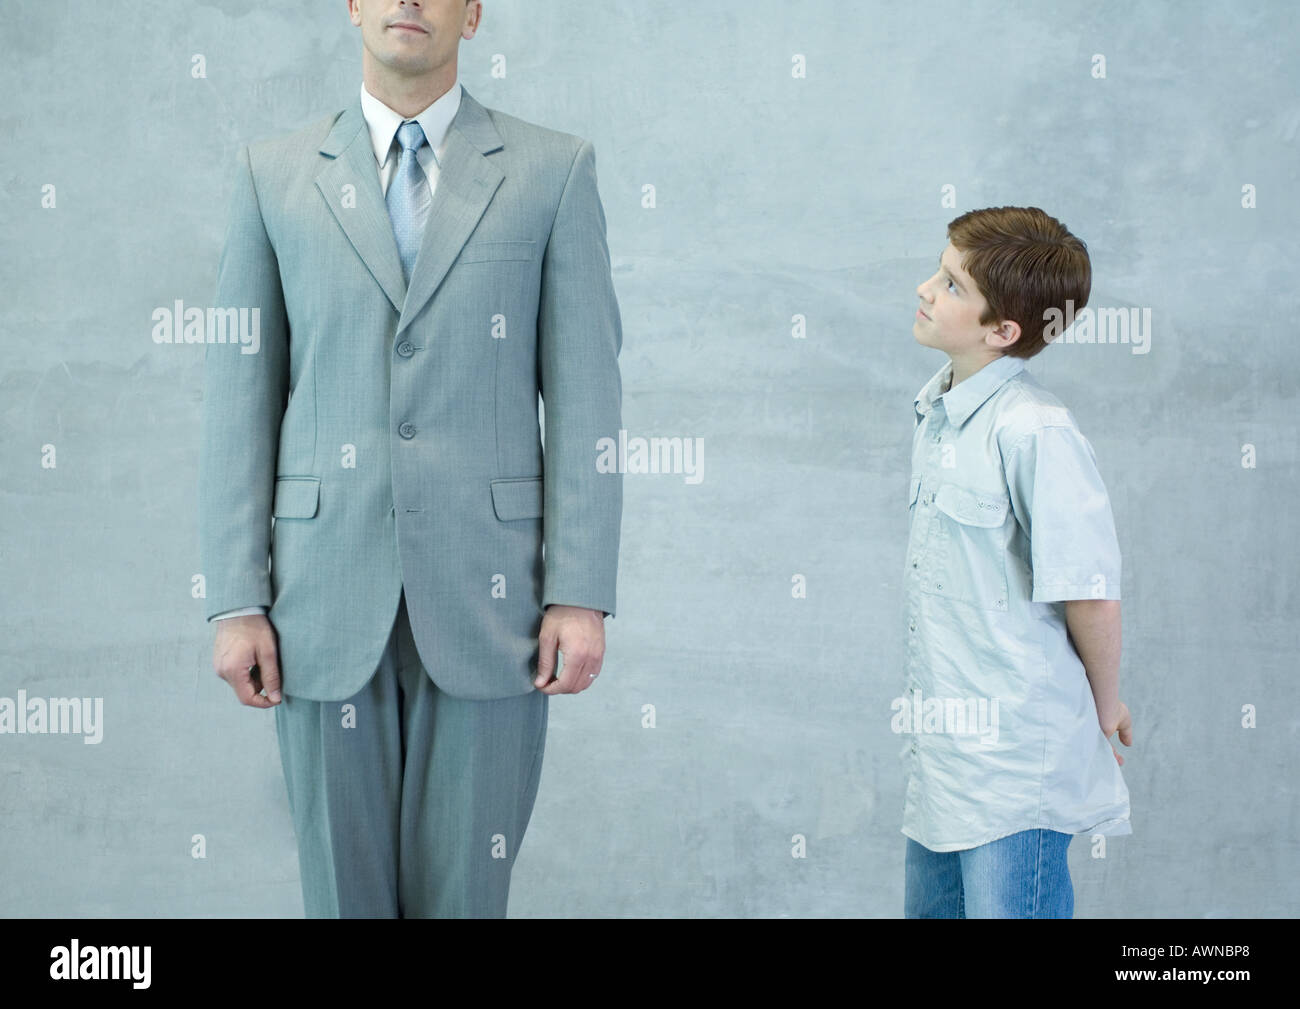 Boy looking up at businessman - Stock Image